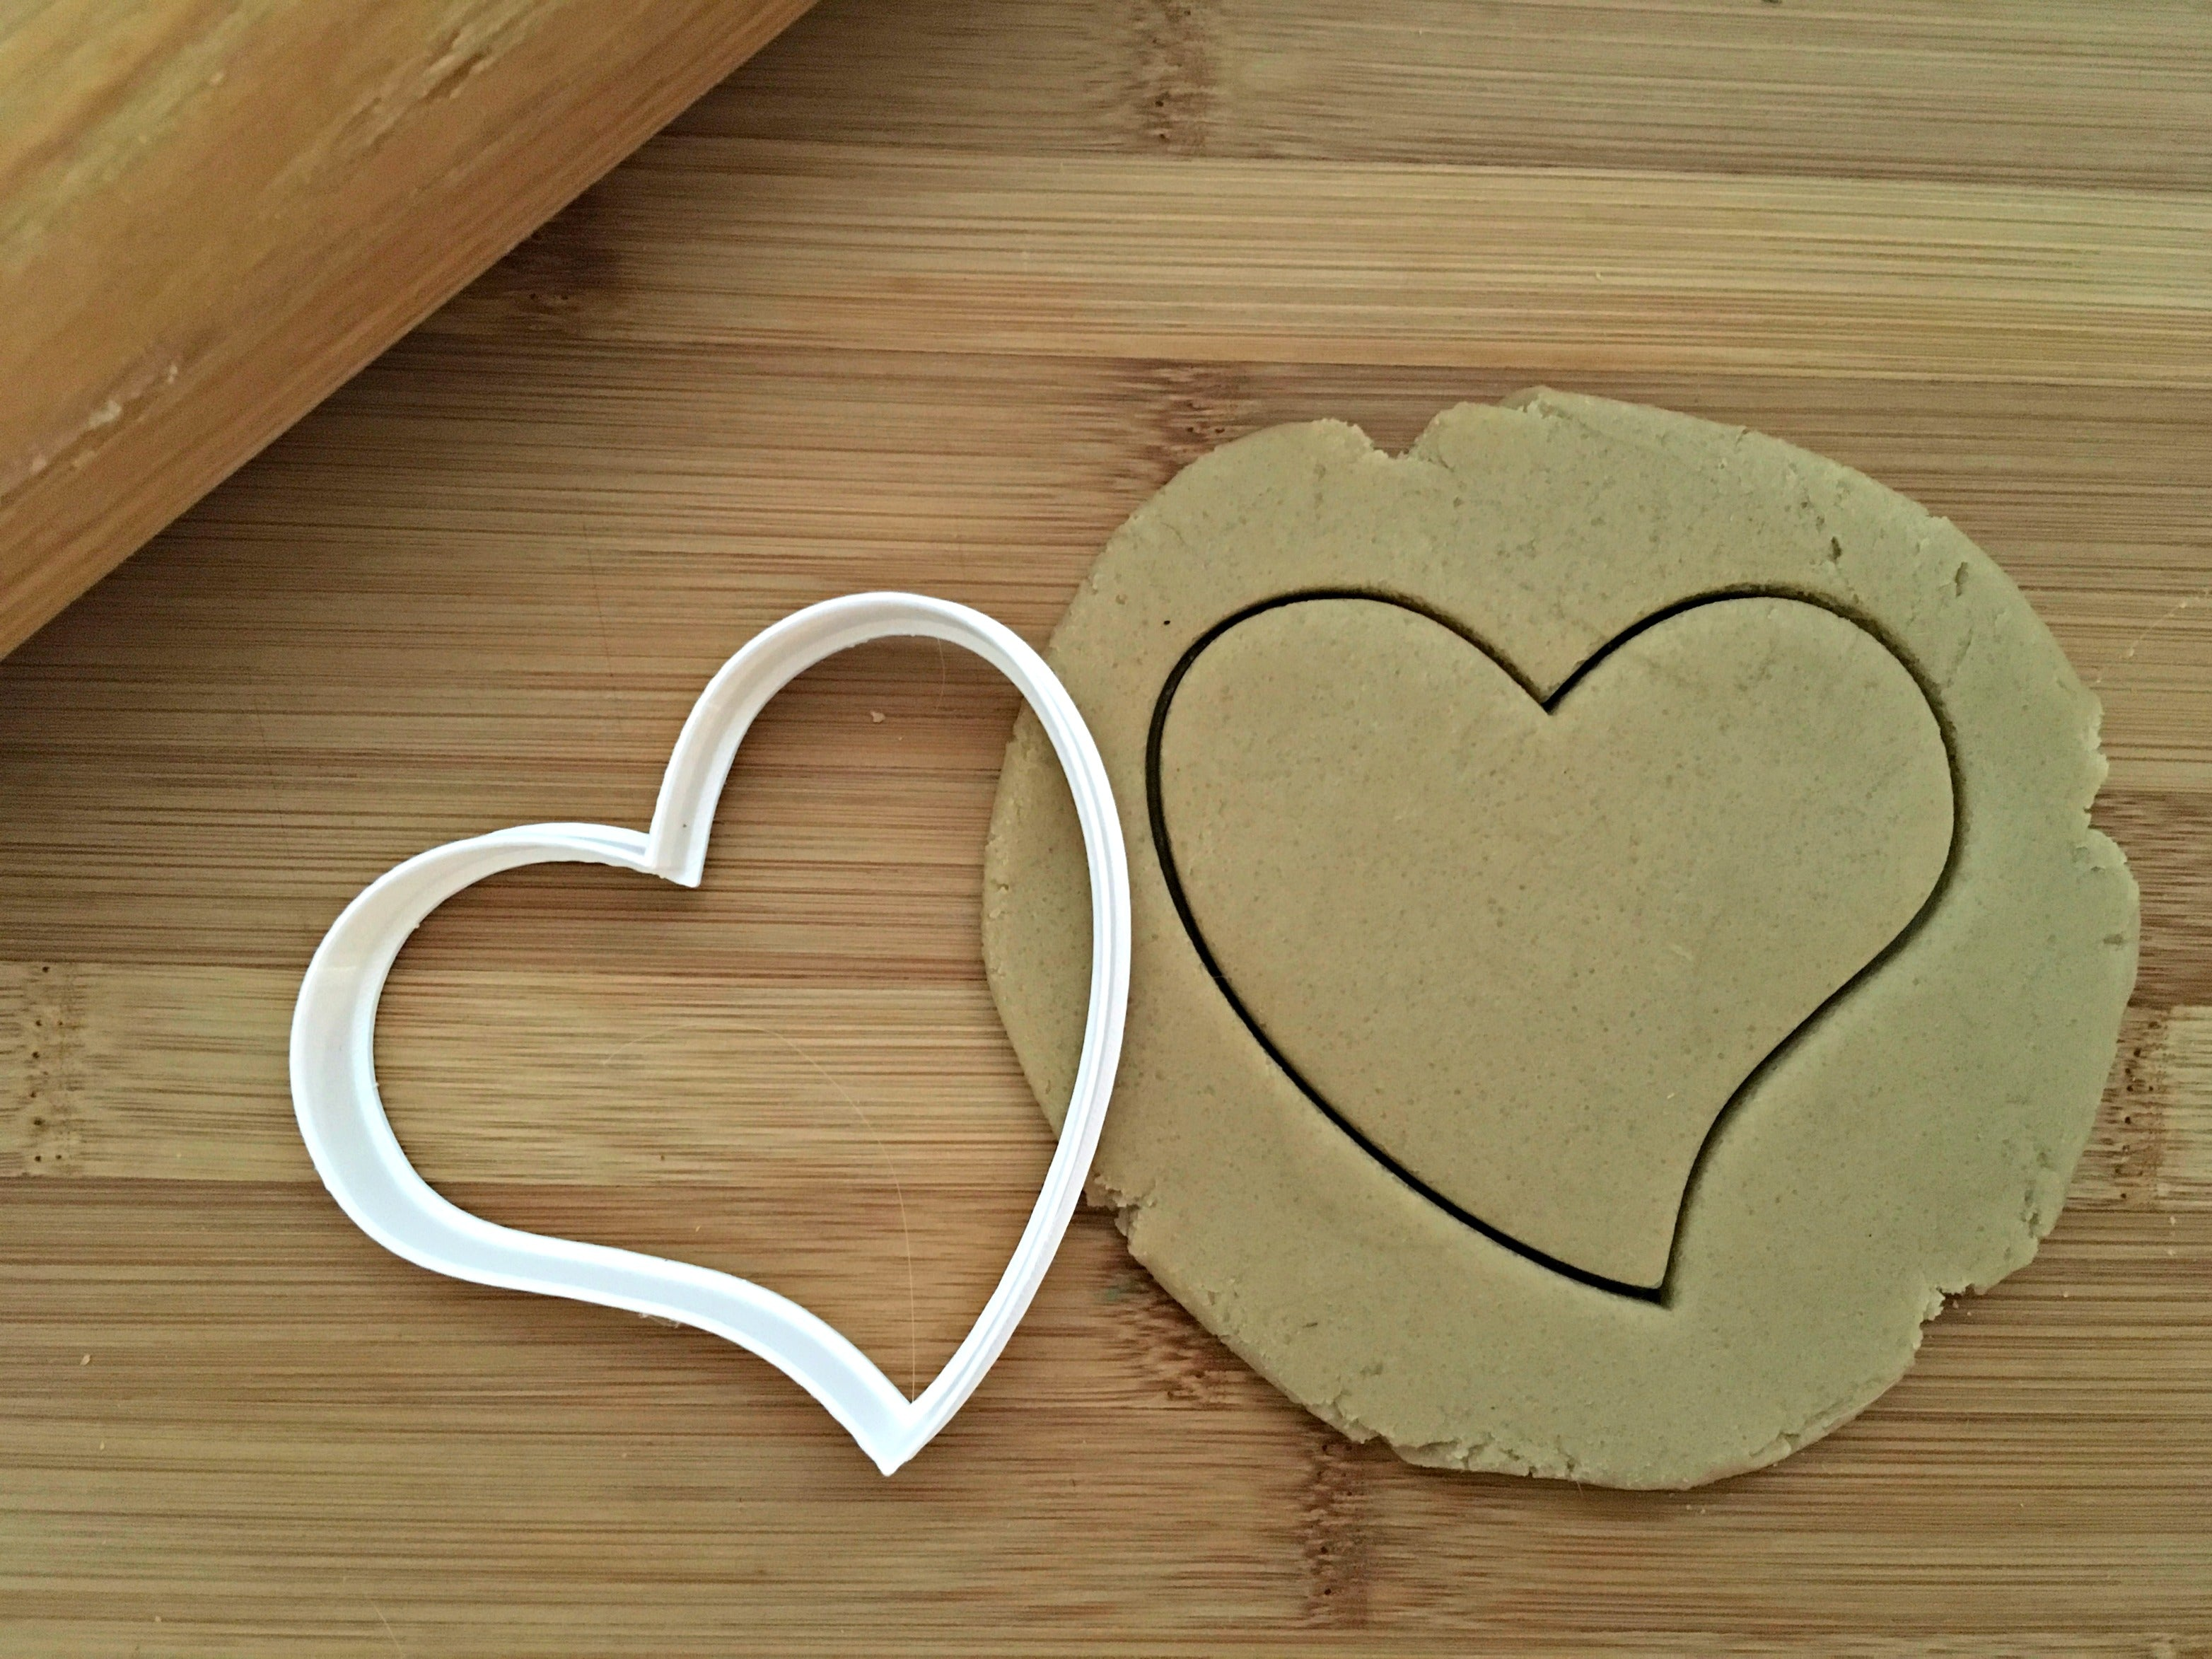 Canted Heart Cookie Cutter/Dishwasher Safe